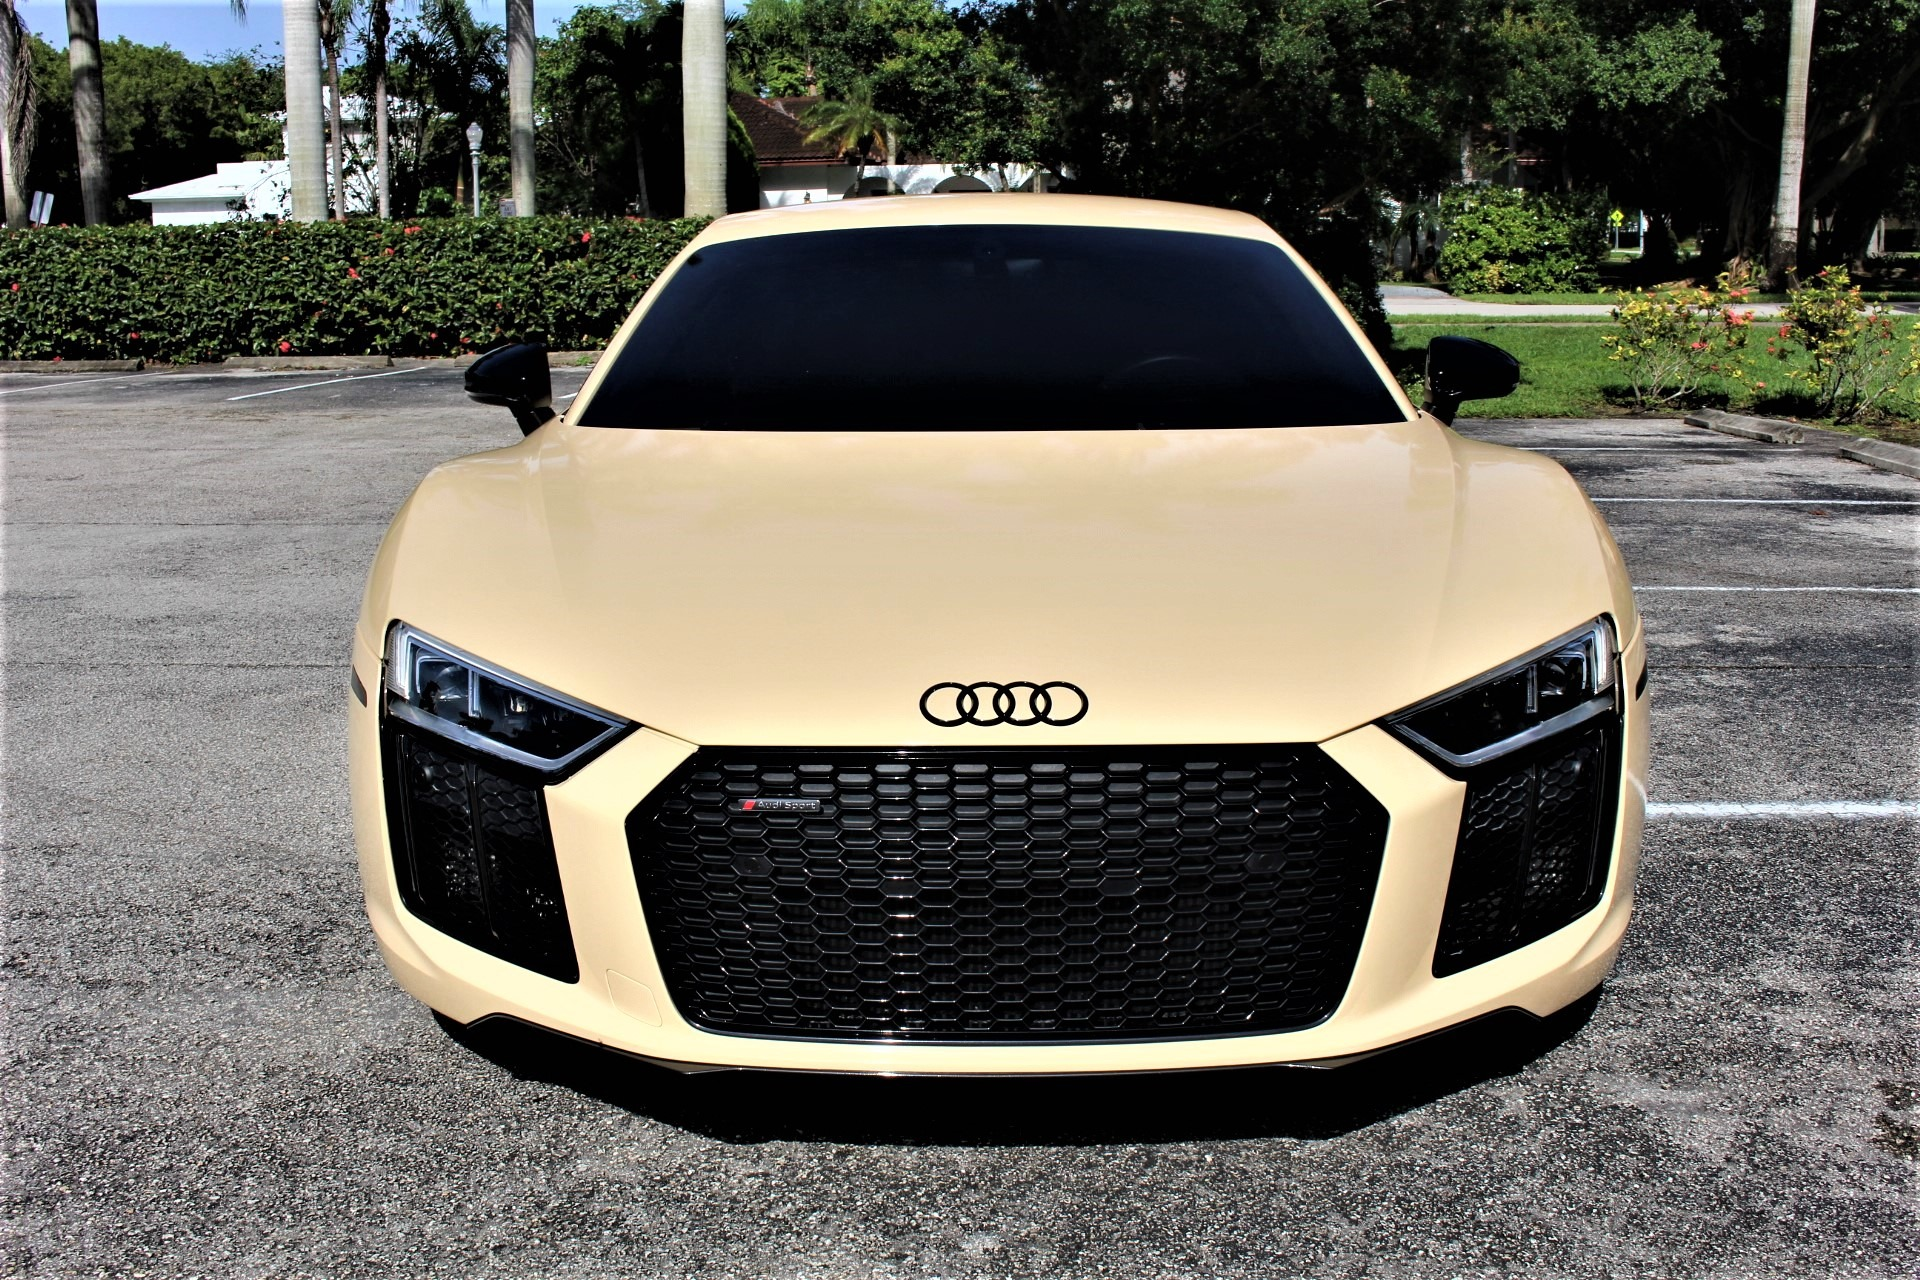 Used 2018 Audi R8 5.2 V10 RWS Twin Turbo for sale $189,850 at The Gables Sports Cars in Miami FL 33146 4